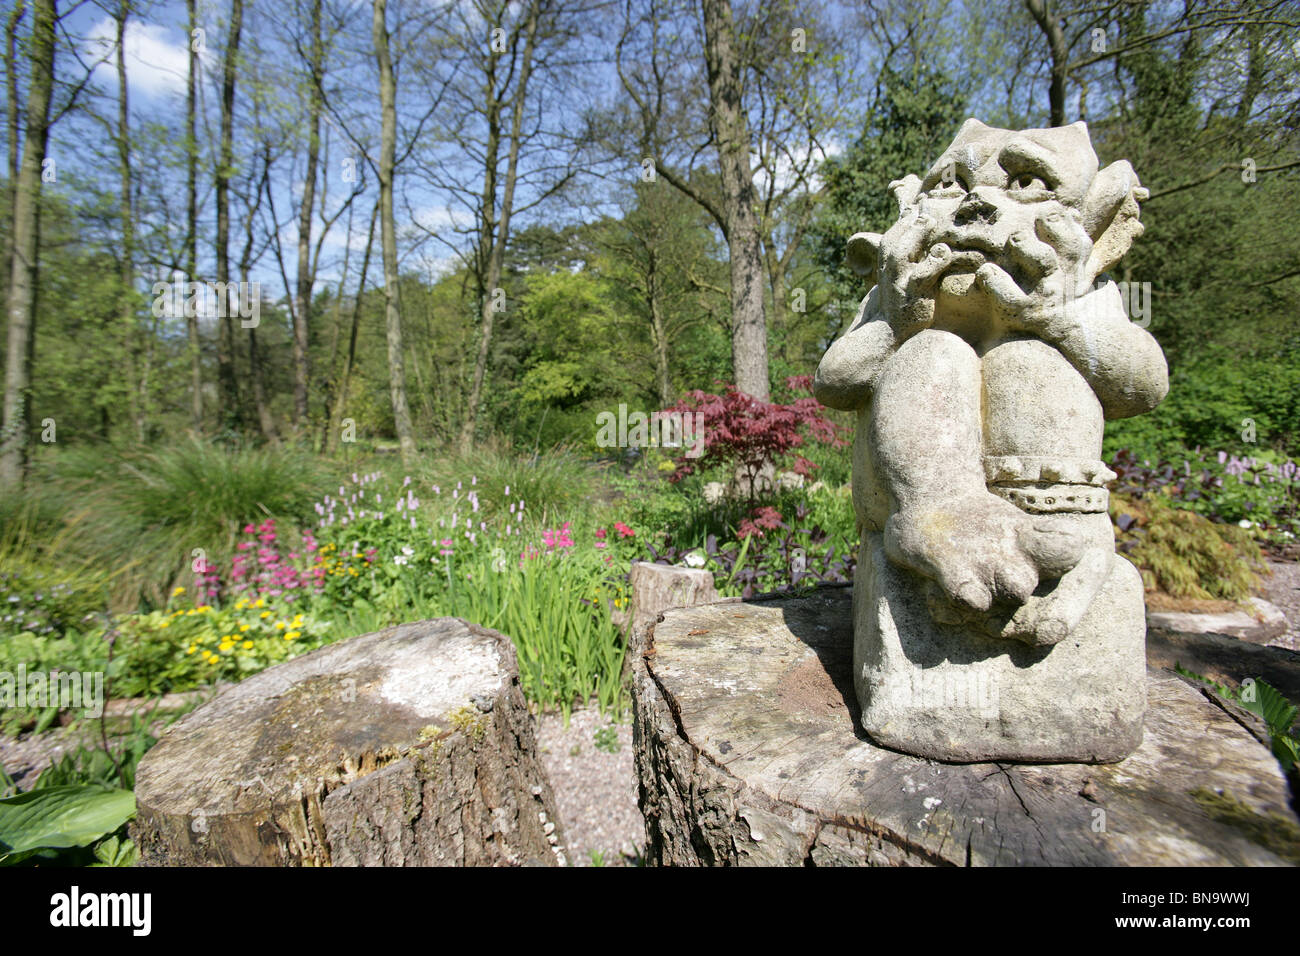 Stonyford Cottage Gardens, England. Spring View Of Stonyford Cottage Gardens  With A Garden Gargoyle In The Foreground.